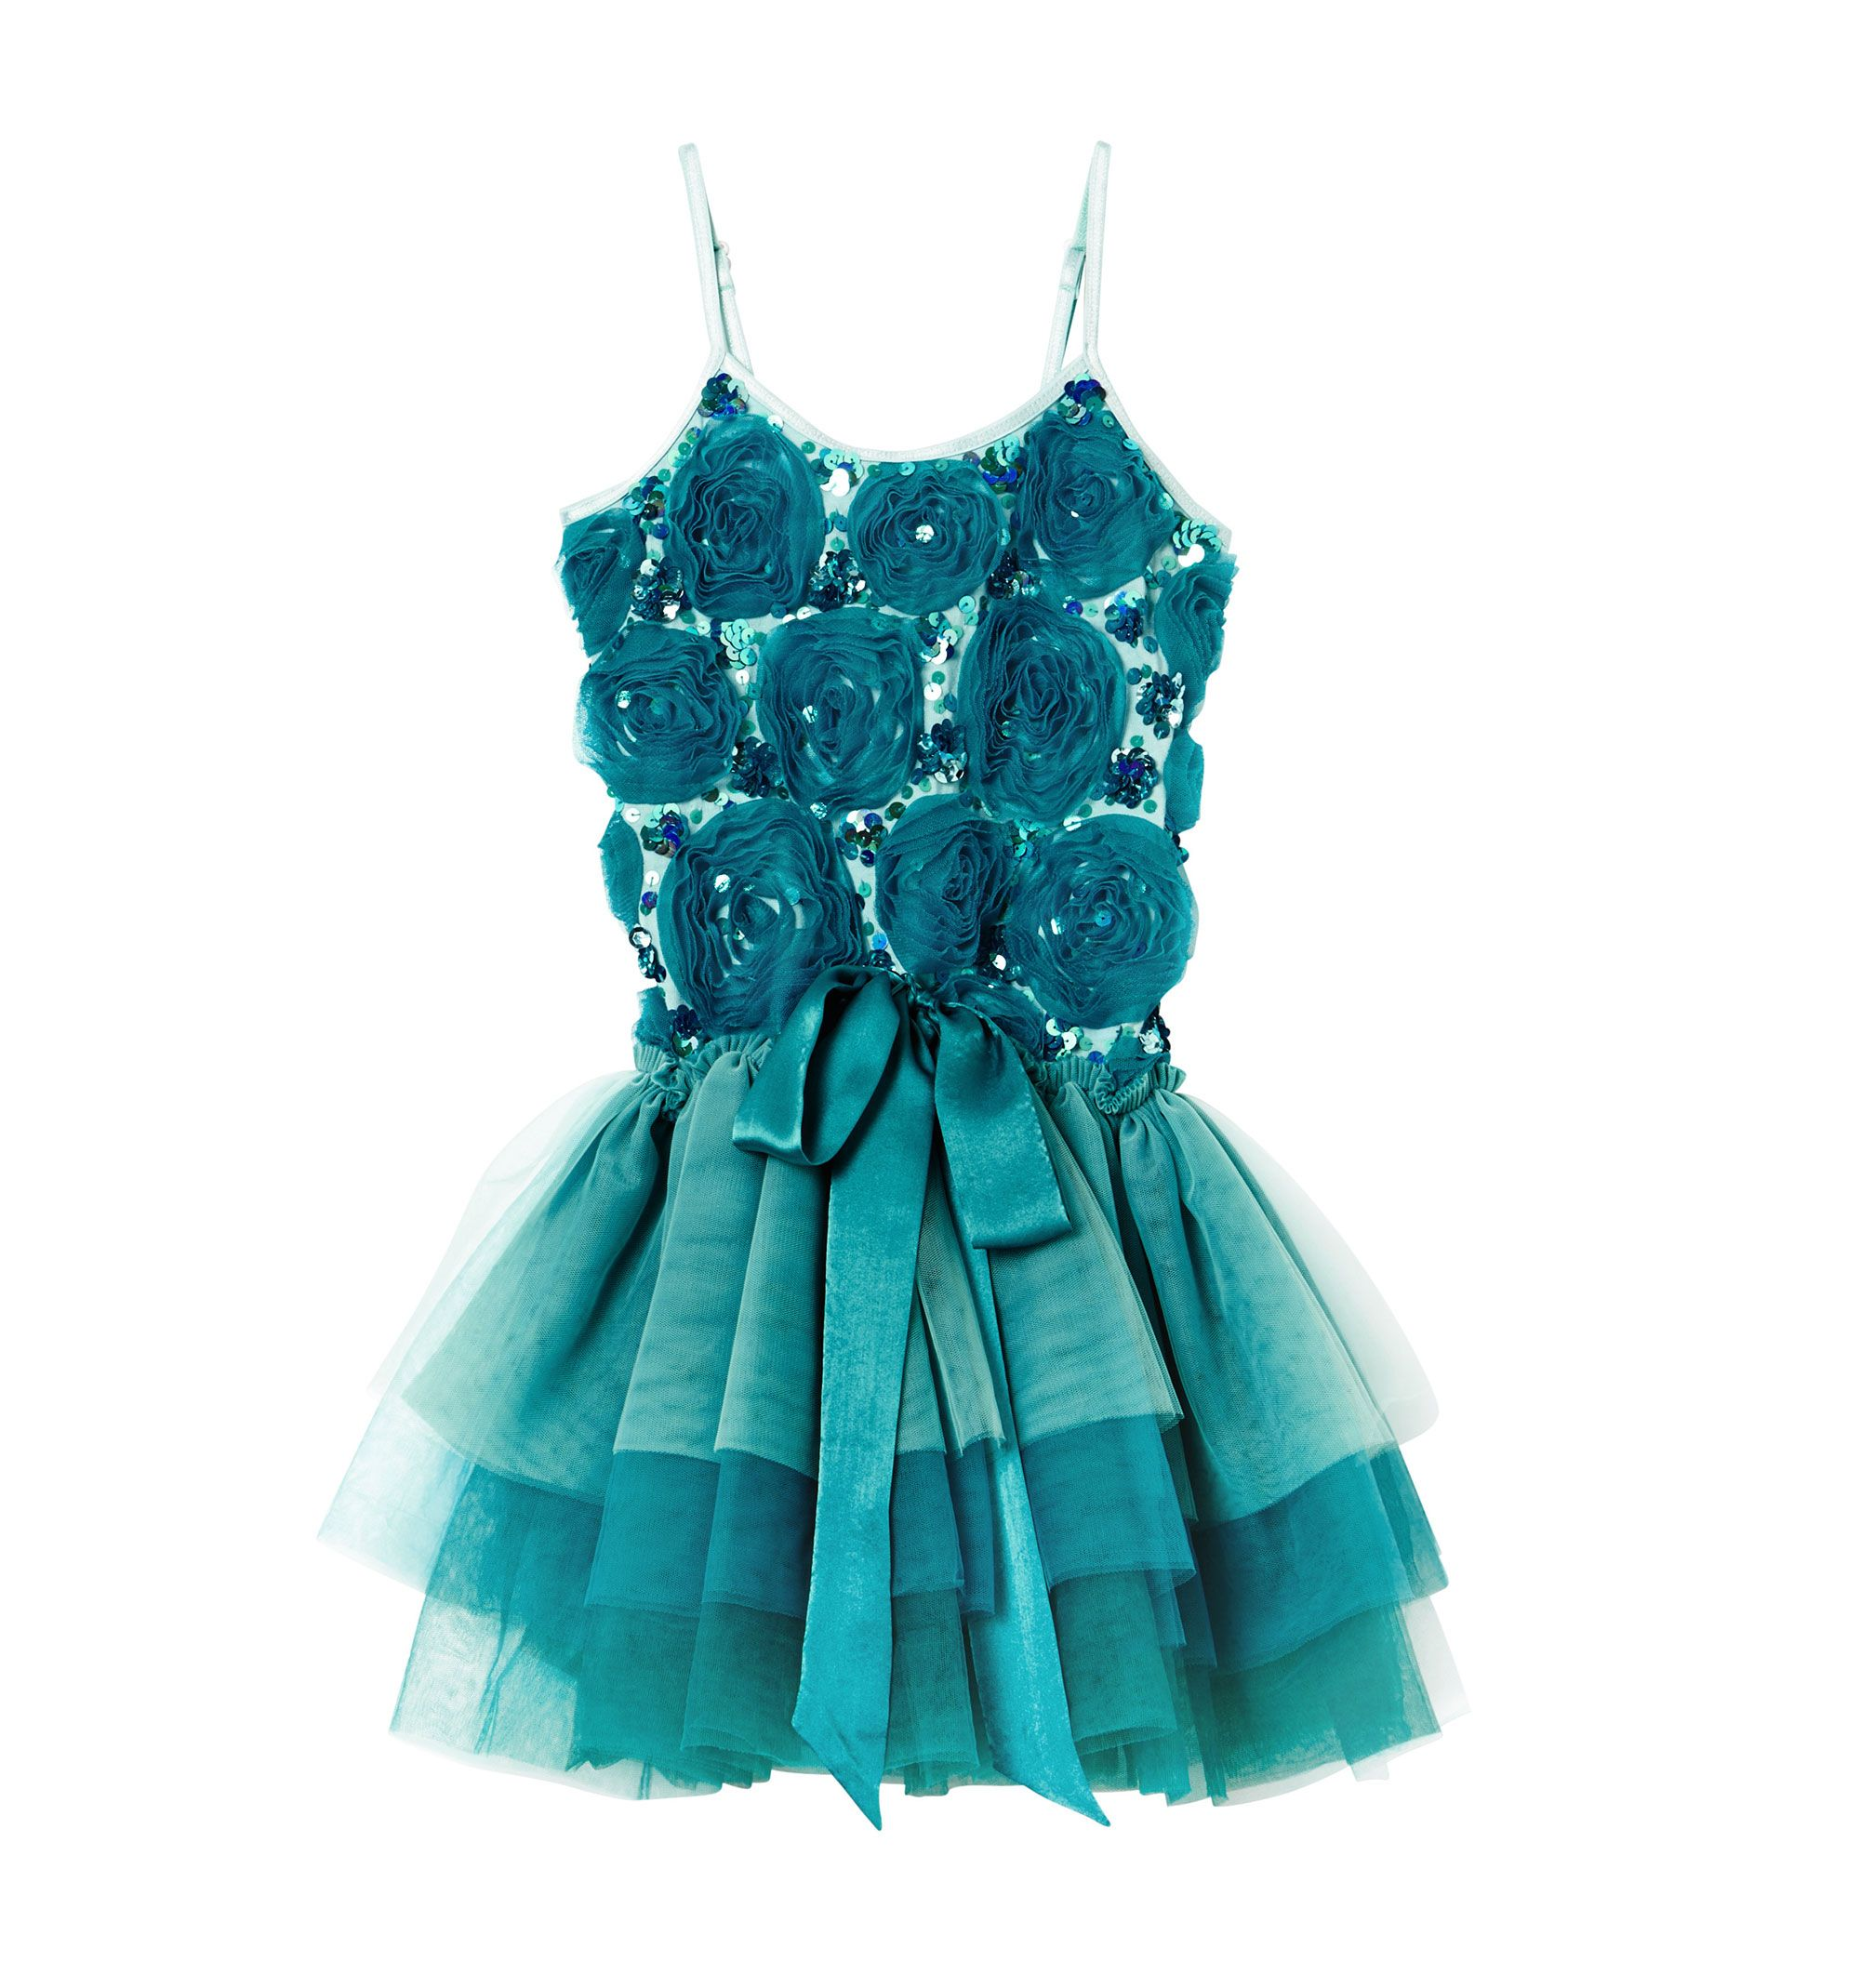 Sparkling like the colours of a turquoise sea, our Emerald Tutu Dress will put a smile on any little girl's face. www.tutudumonde.com